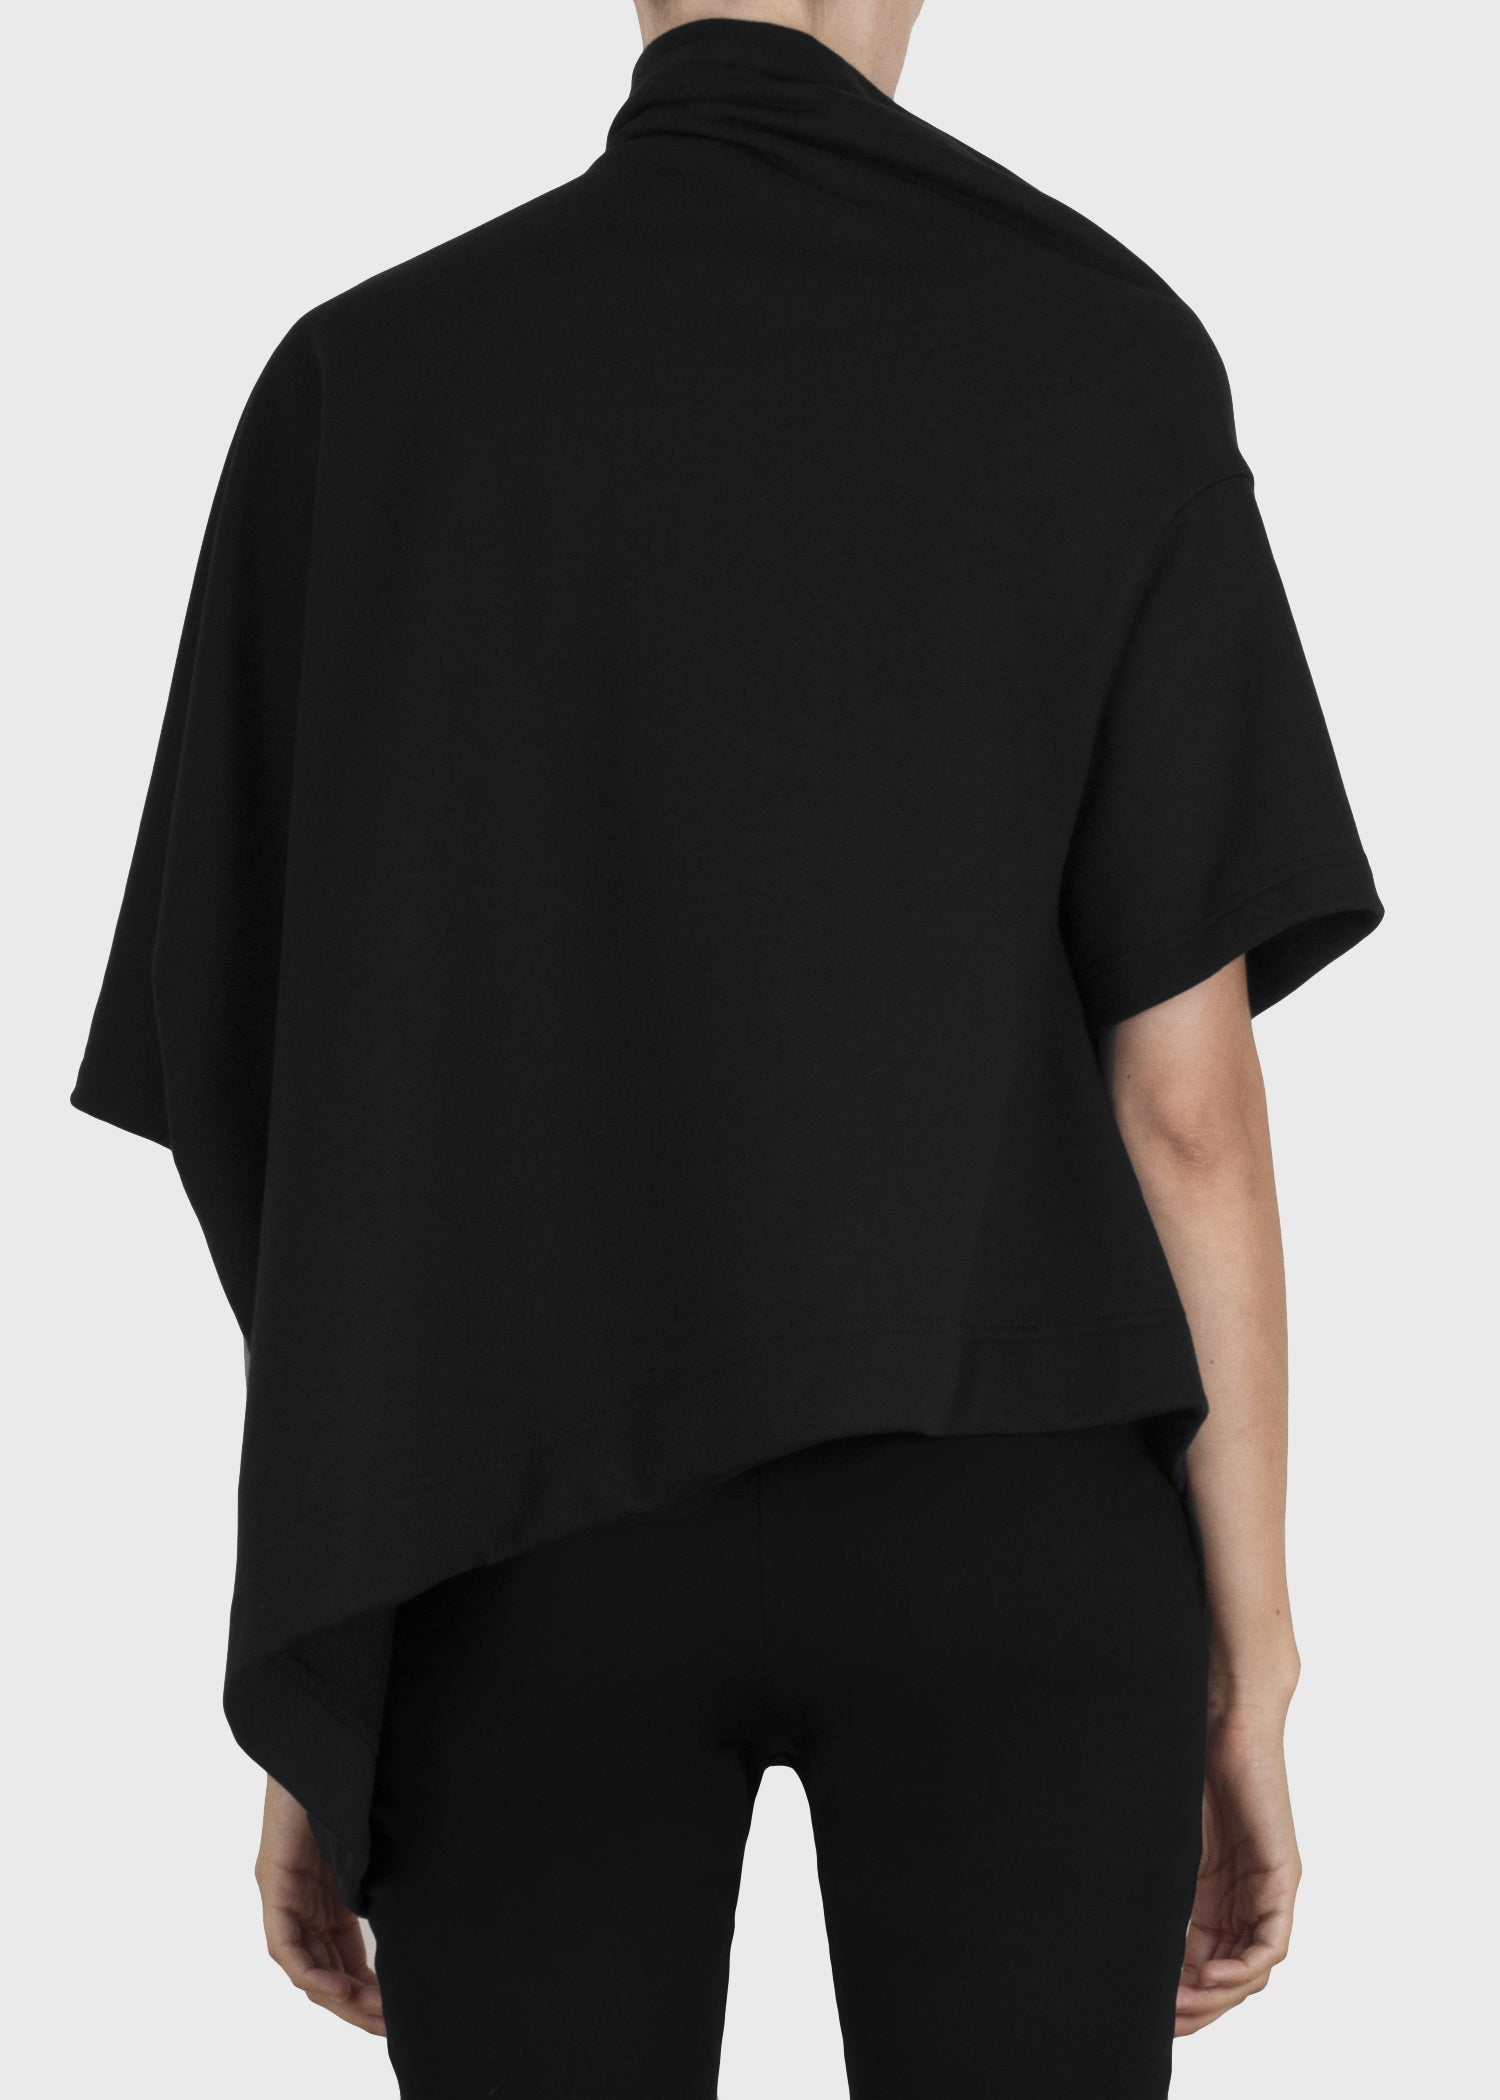 stack sweatshirt - black